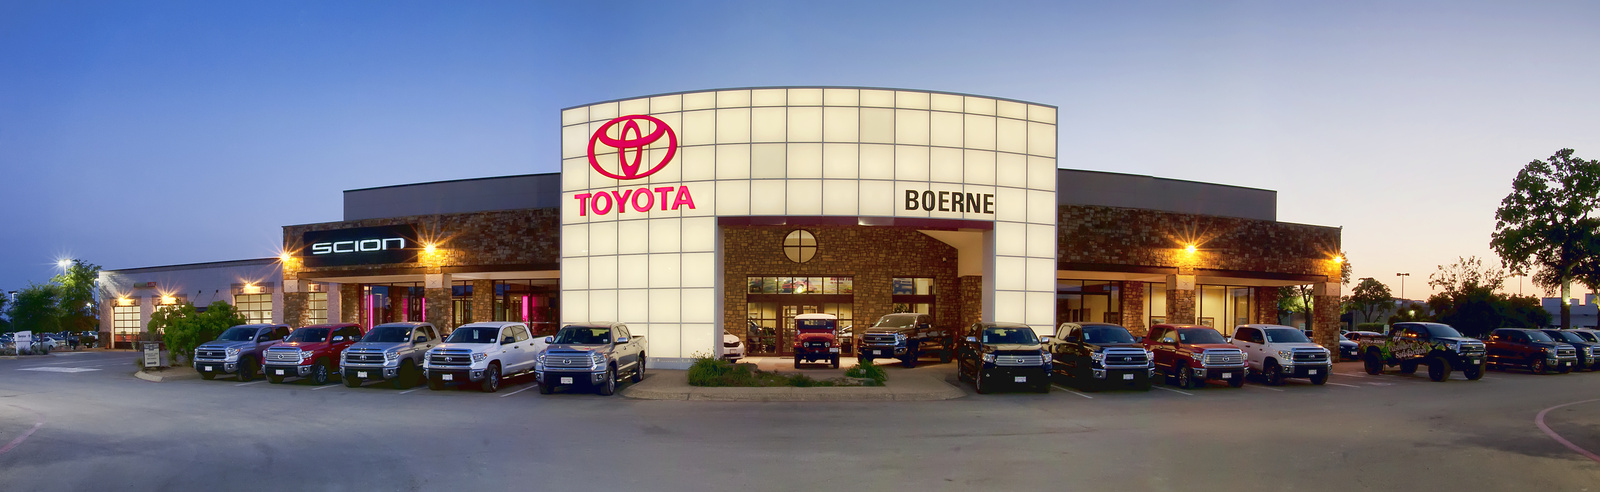 toyota of boerne boerne tx read consumer reviews browse used and new cars for sale. Black Bedroom Furniture Sets. Home Design Ideas